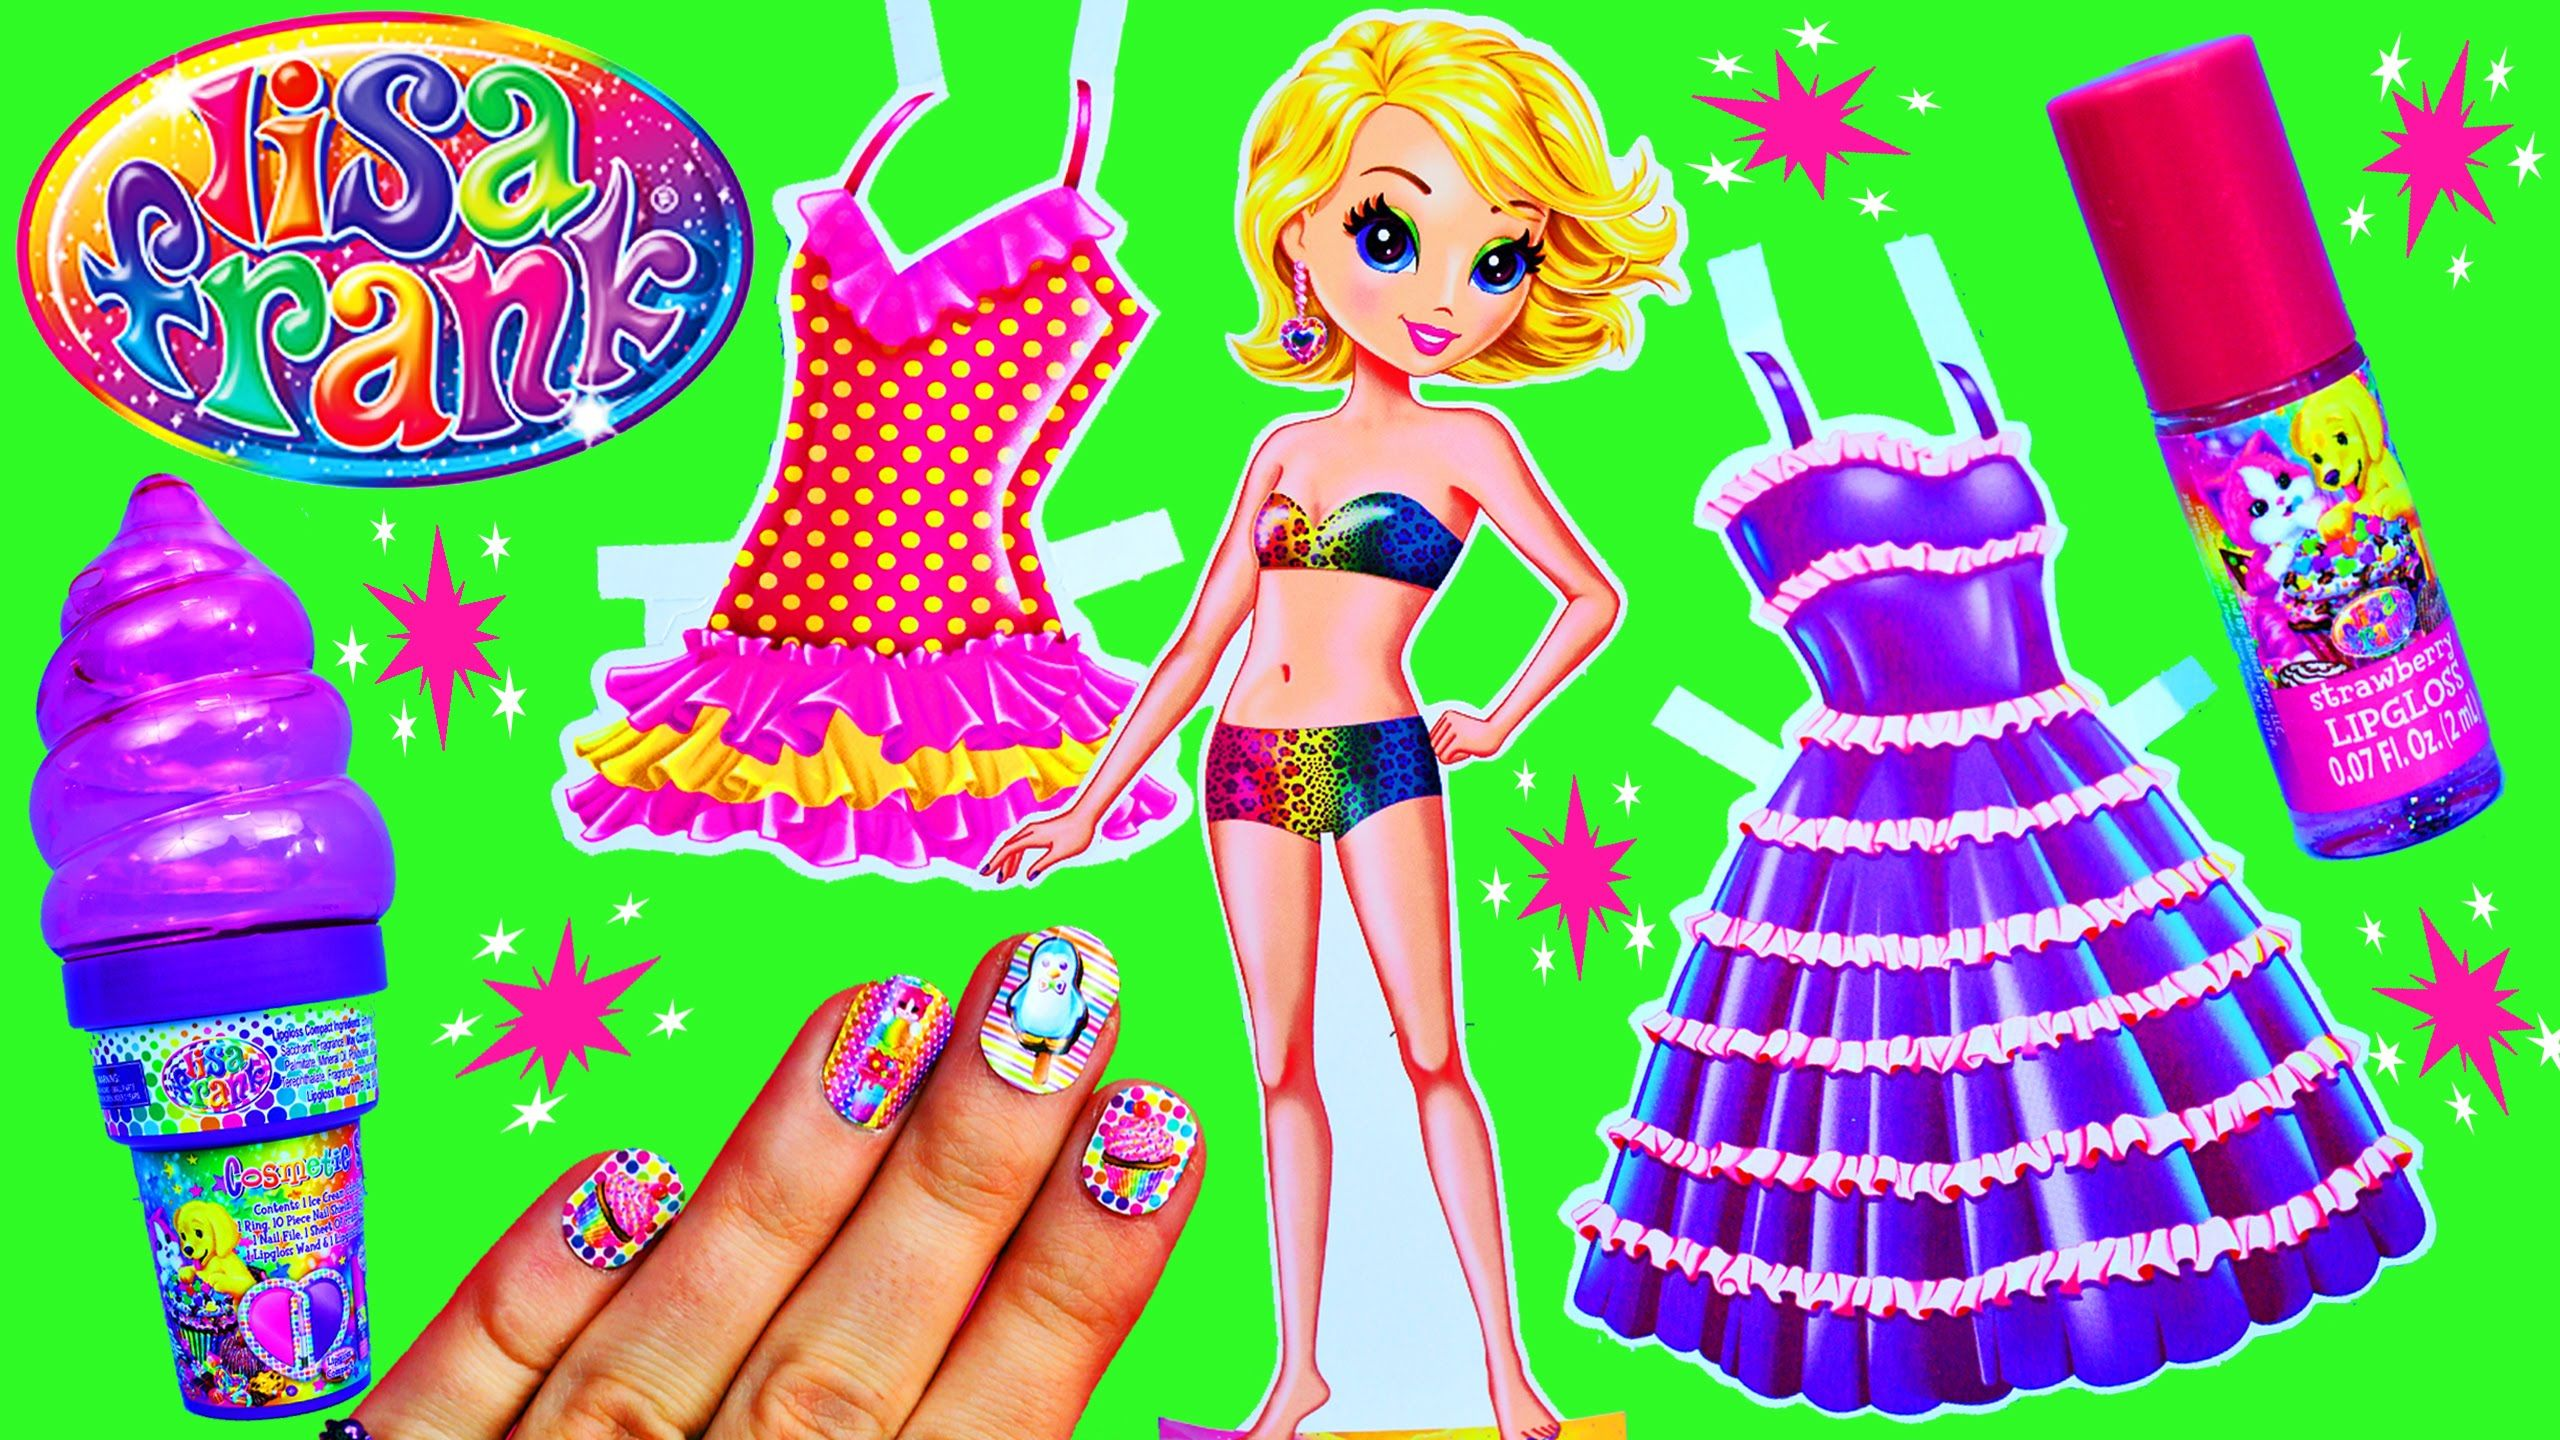 LISA FRANK Toys Paper Dolls Dress Up Stickers & Surprise Ice Cream